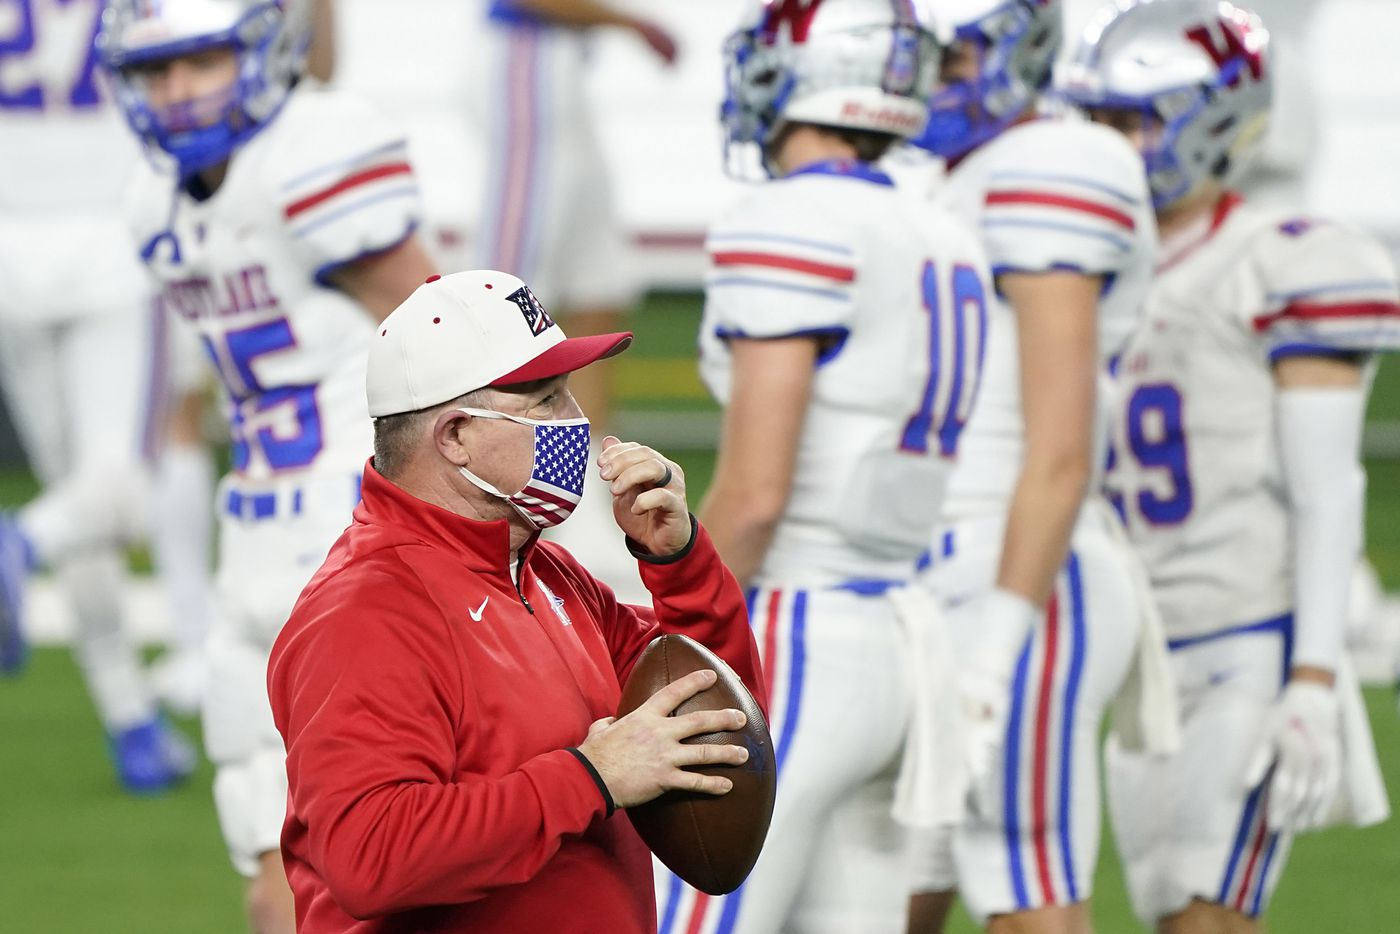 Austin Westlake head coach Todd Dodge watches his team warm up before the Class 6A Division I state football championship game against Southlake Carroll at AT&T Stadium on Saturday, Jan. 16, 2021, in Arlington, Texas.